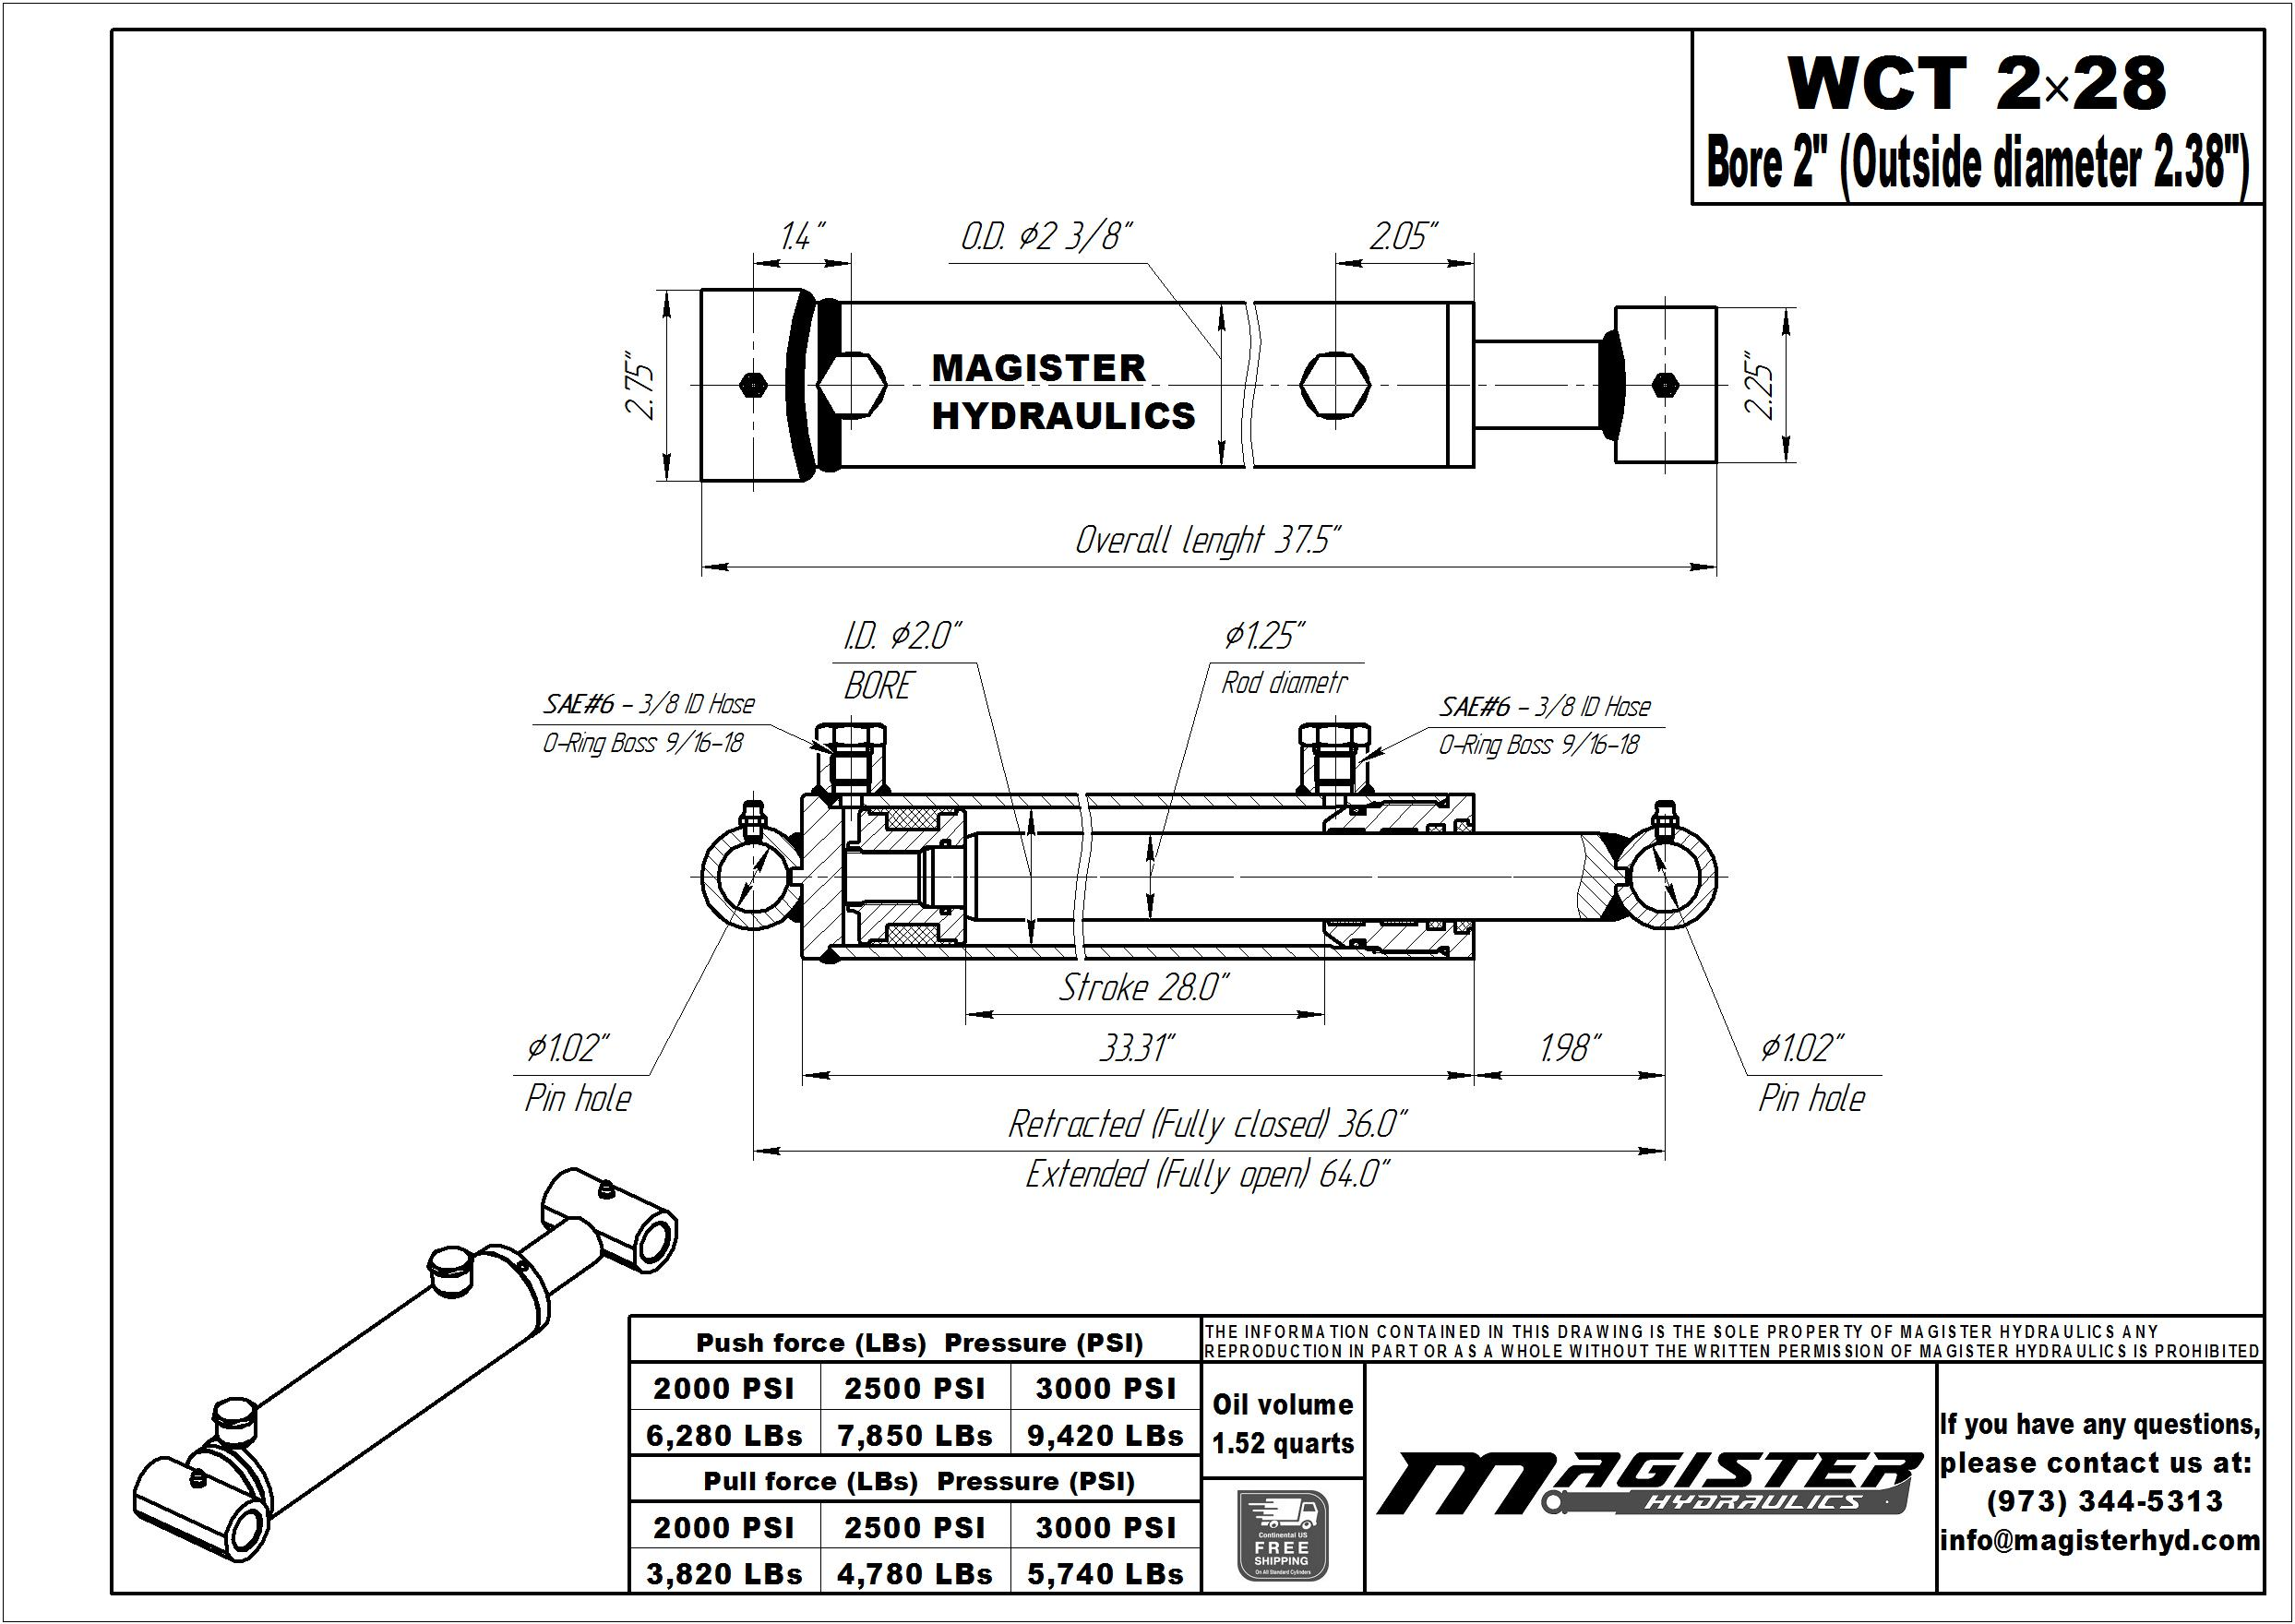 2 bore x 28 stroke hydraulic cylinder, welded cross tube double acting cylinder   Magister Hydraulics